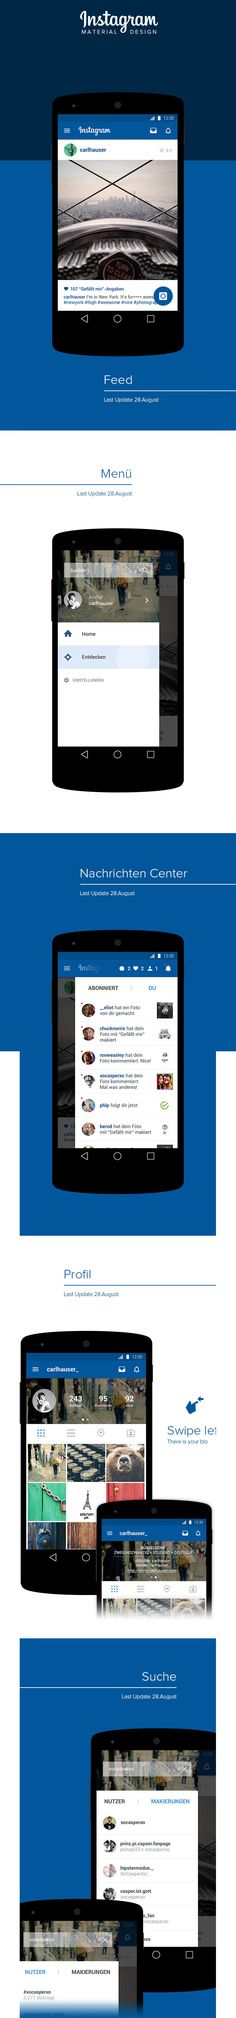 Instagram | Material Design Redesign android